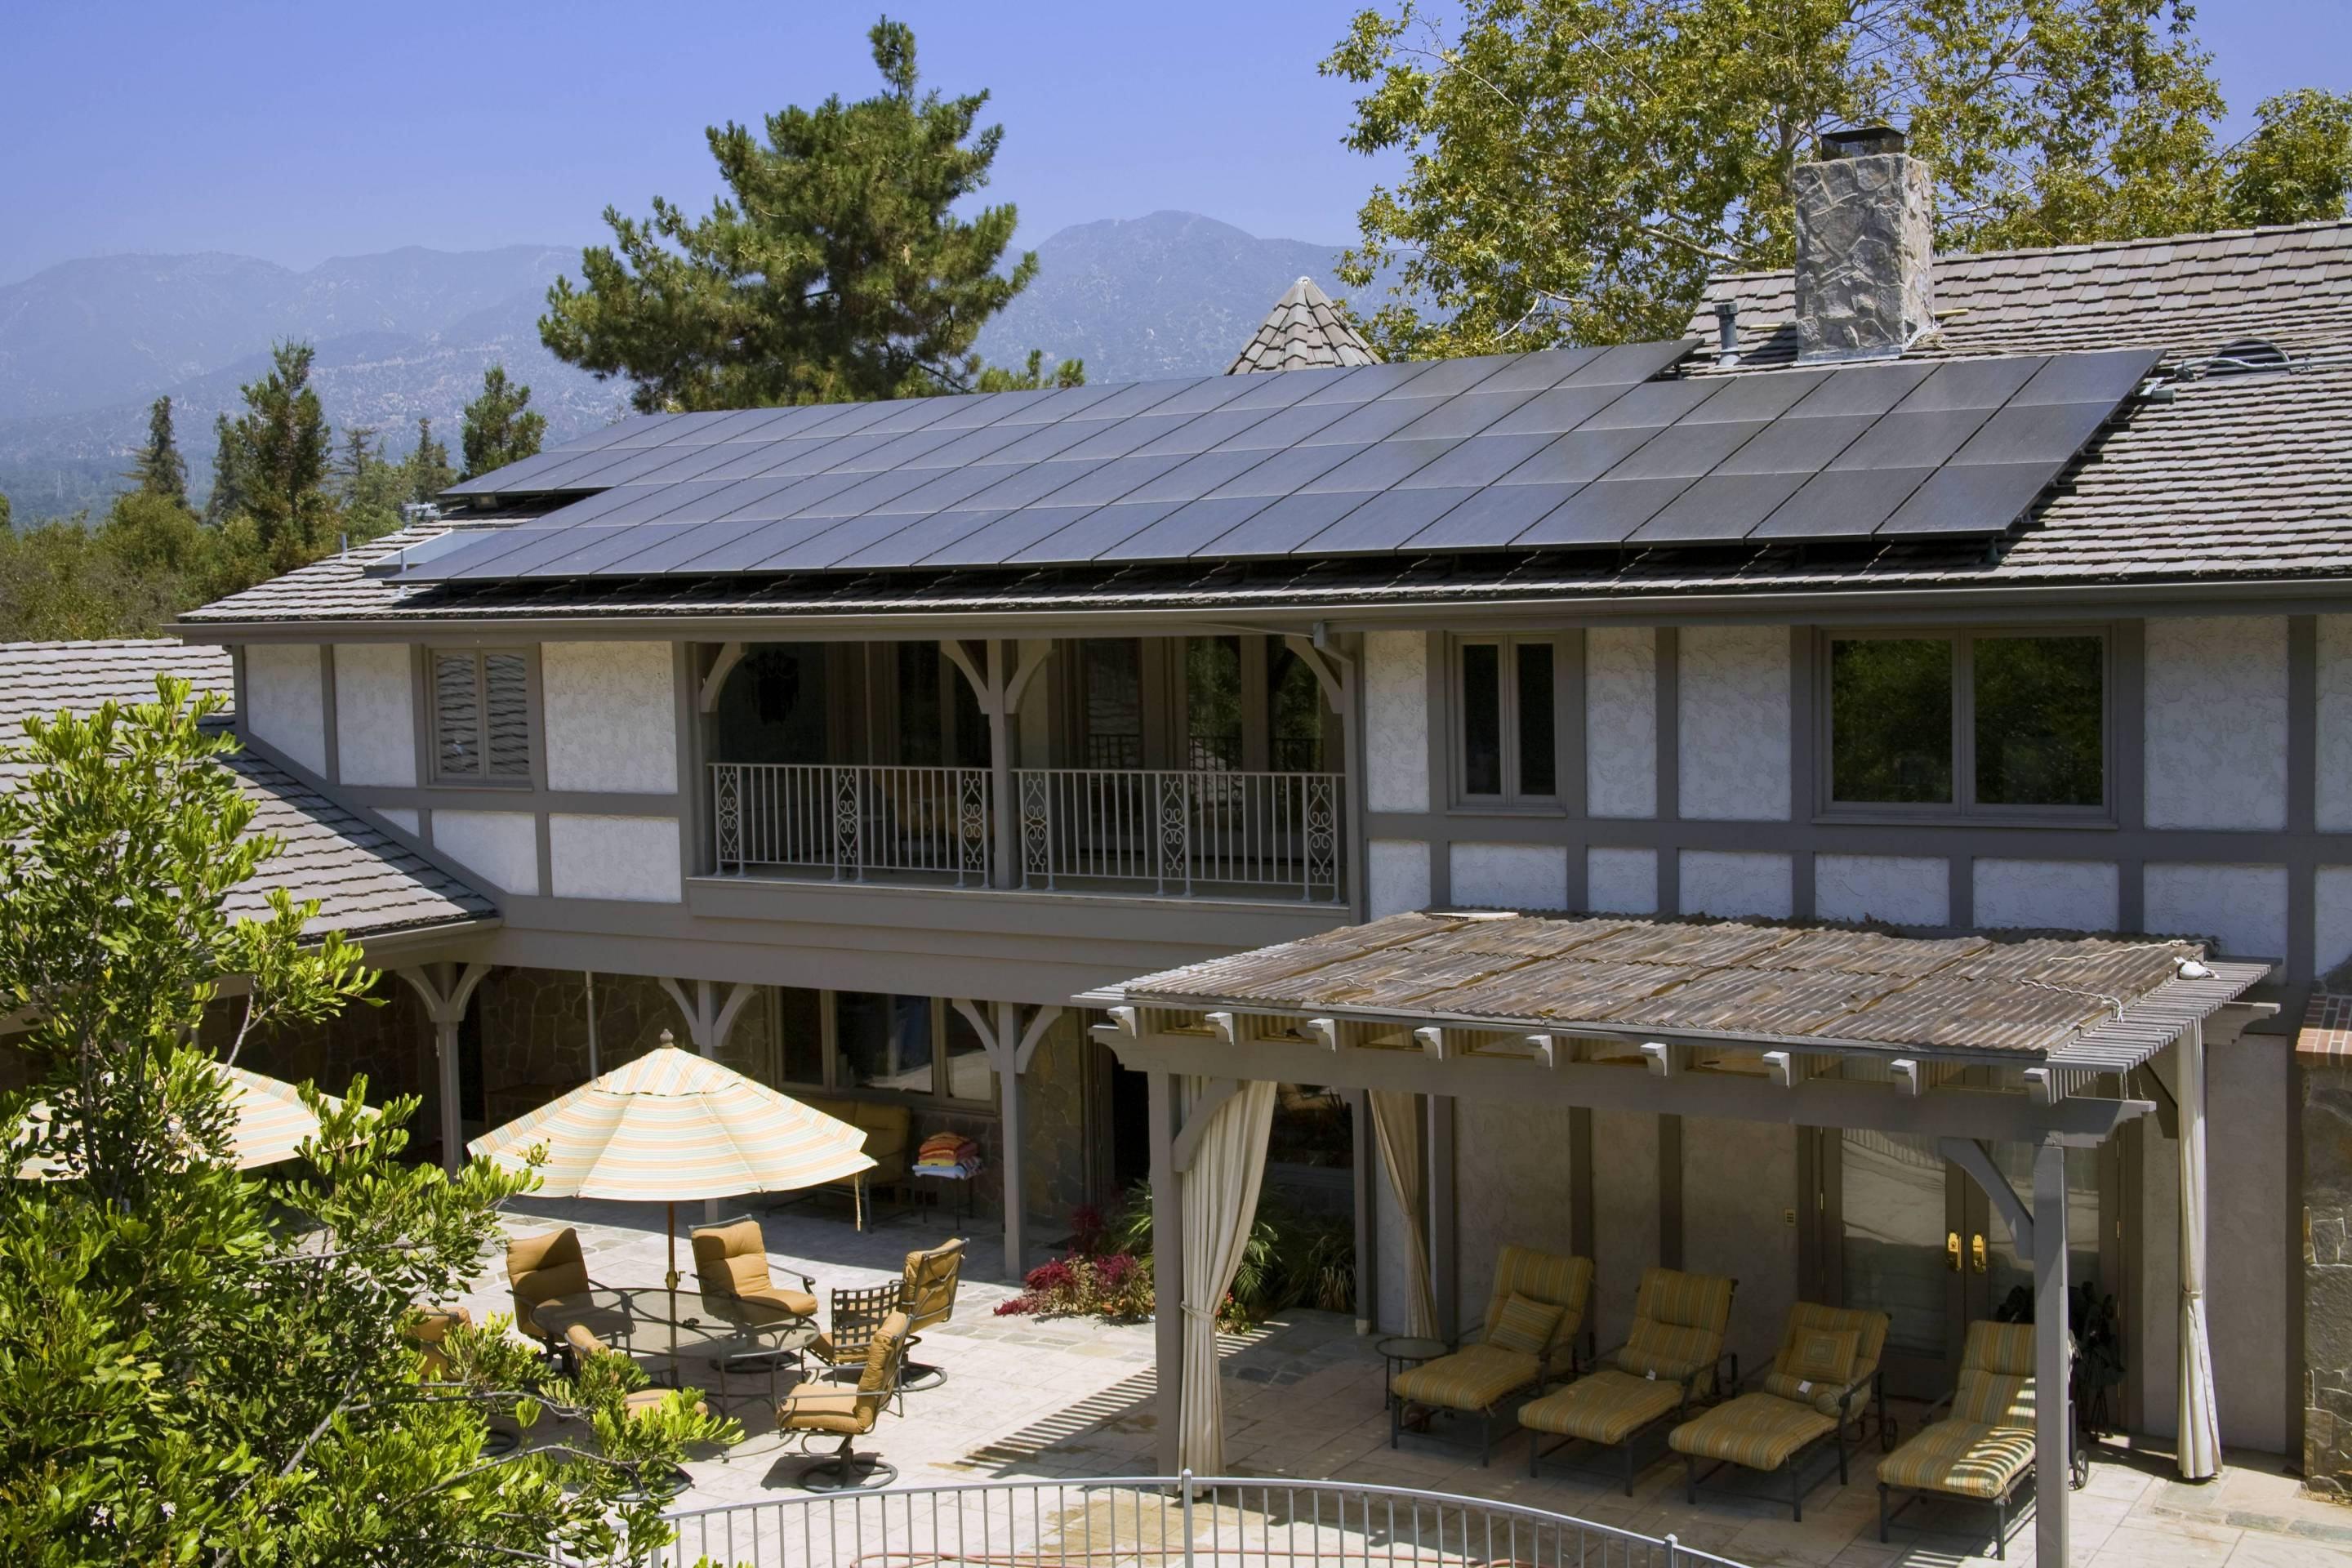 Residential home with solar array on roof. La Cavada, Los Angeles. By 2020, solar panels will be required for all new homes in California.